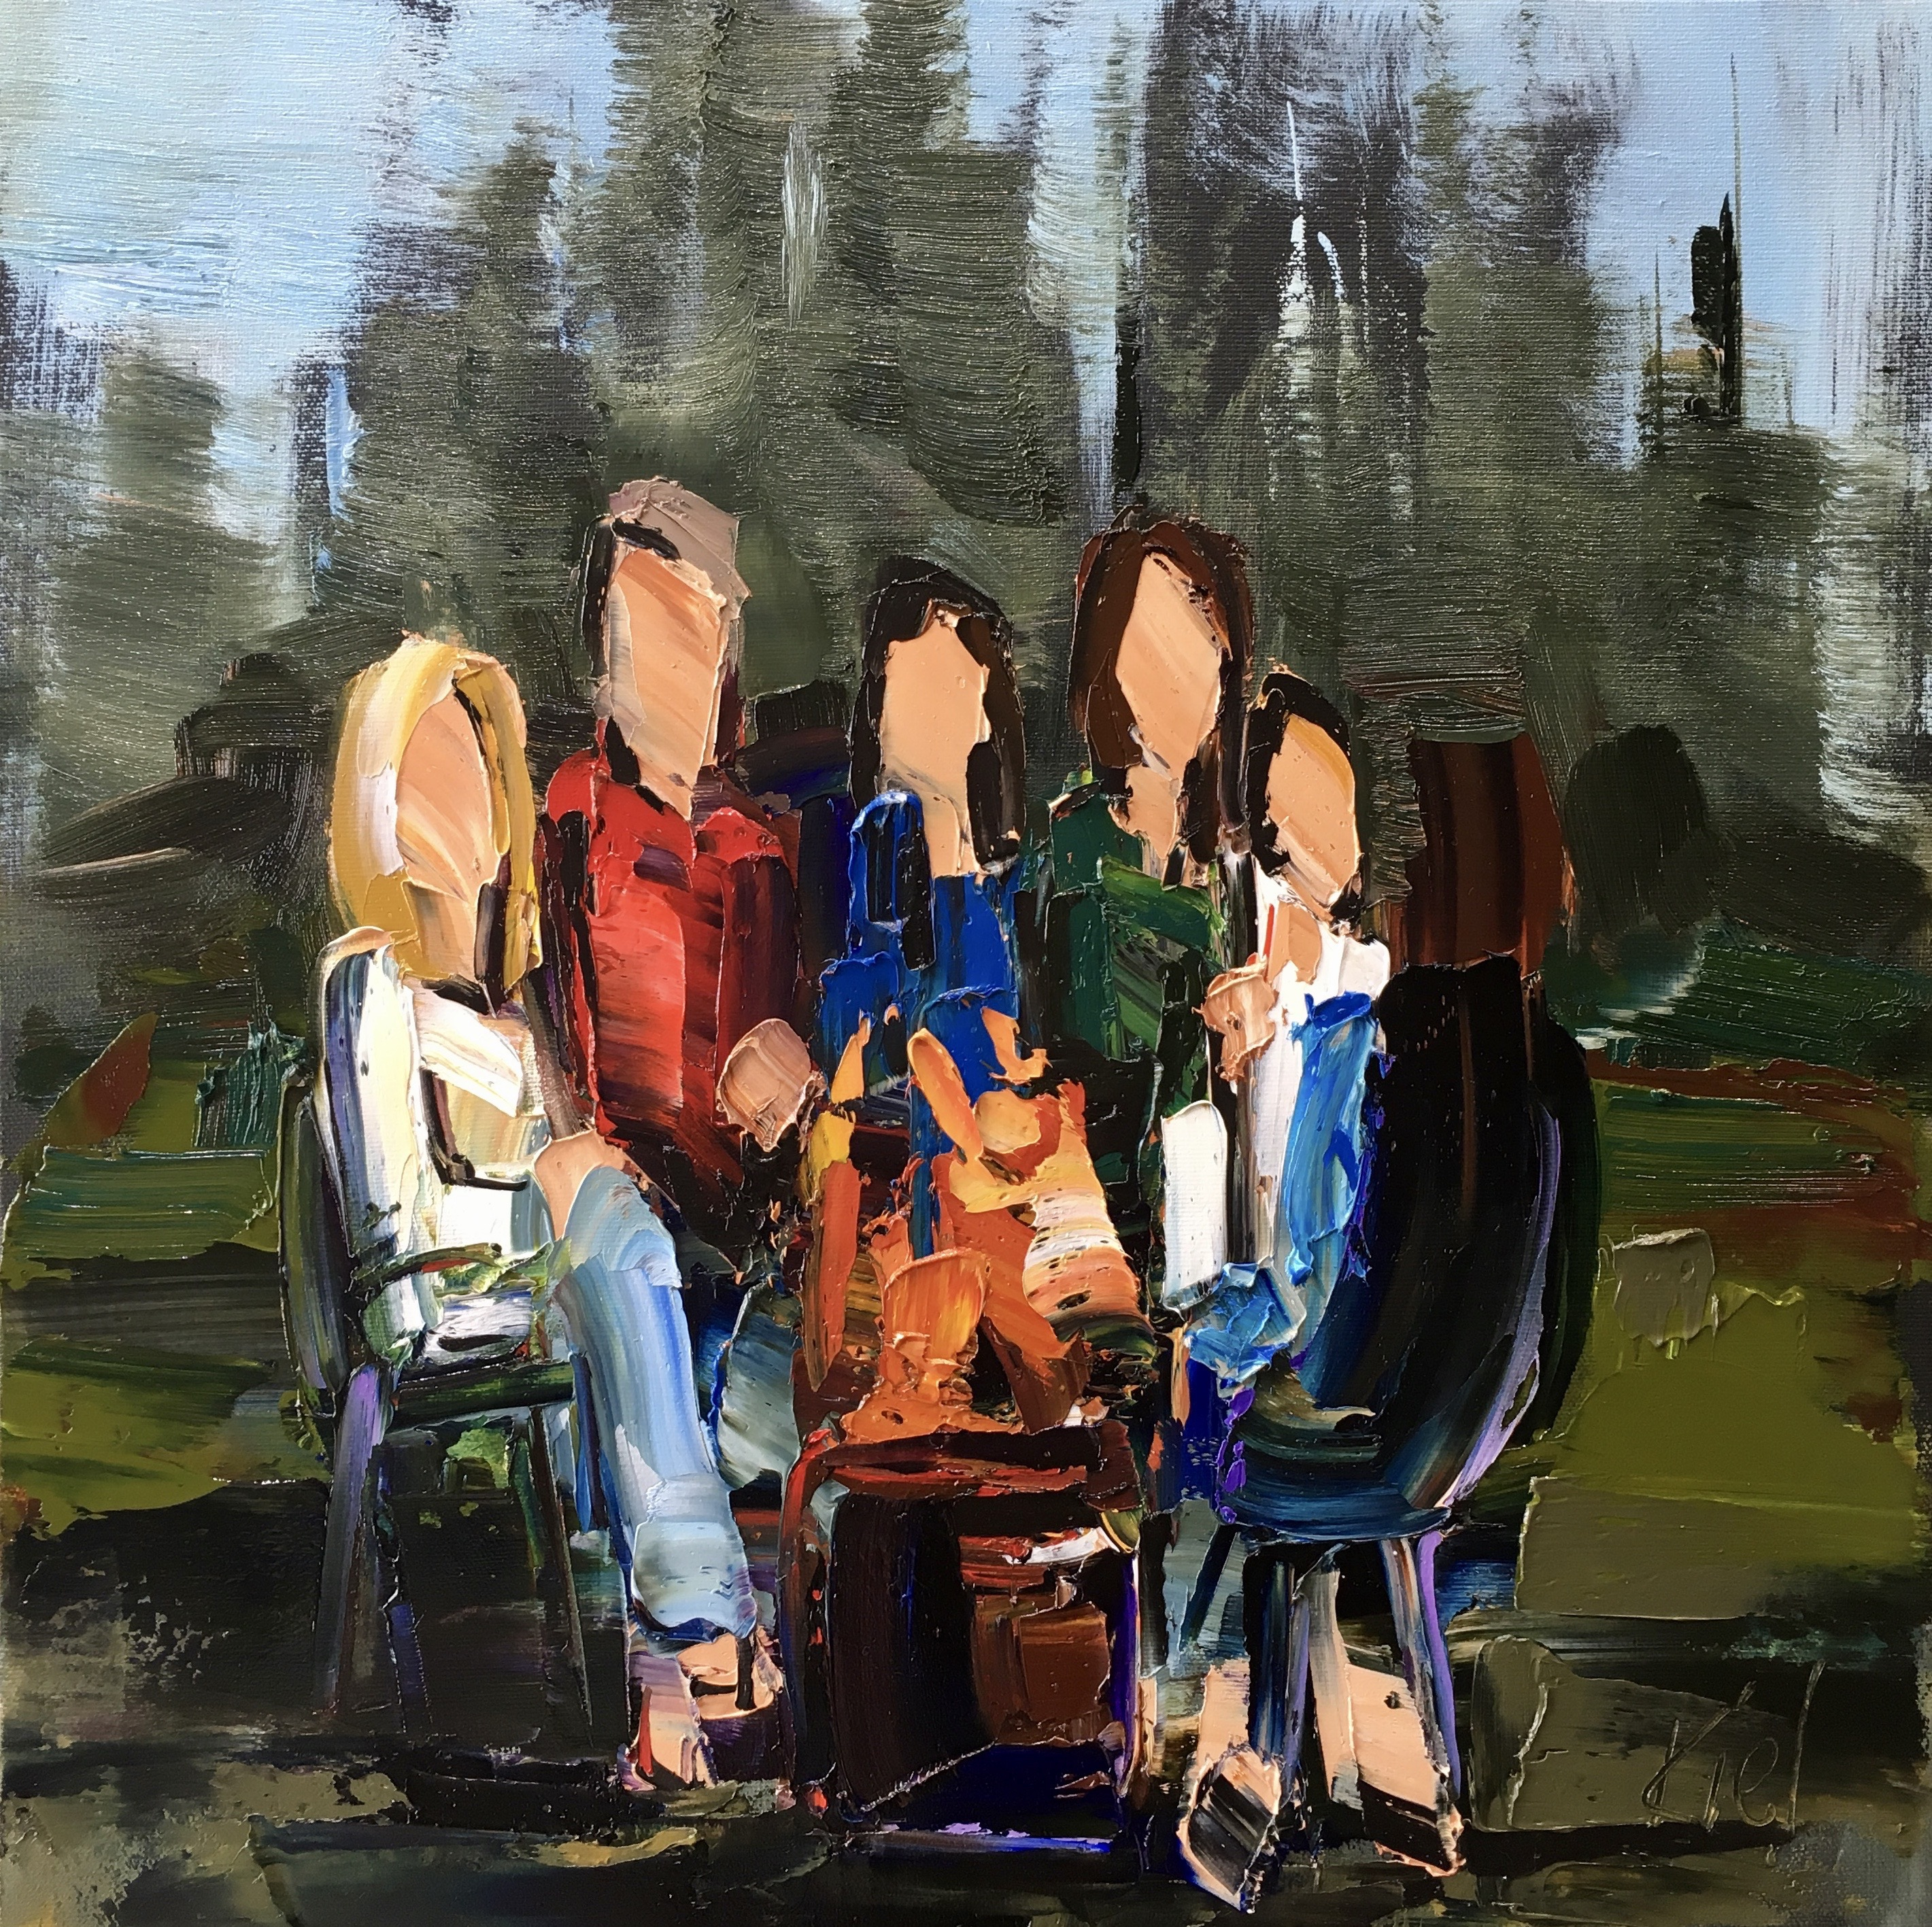 Every Summer Has Its Own Story 3, oil painting by Kimberly Kiel | Effusion Art Gallery + Cast Glass Studio, Invermere BC